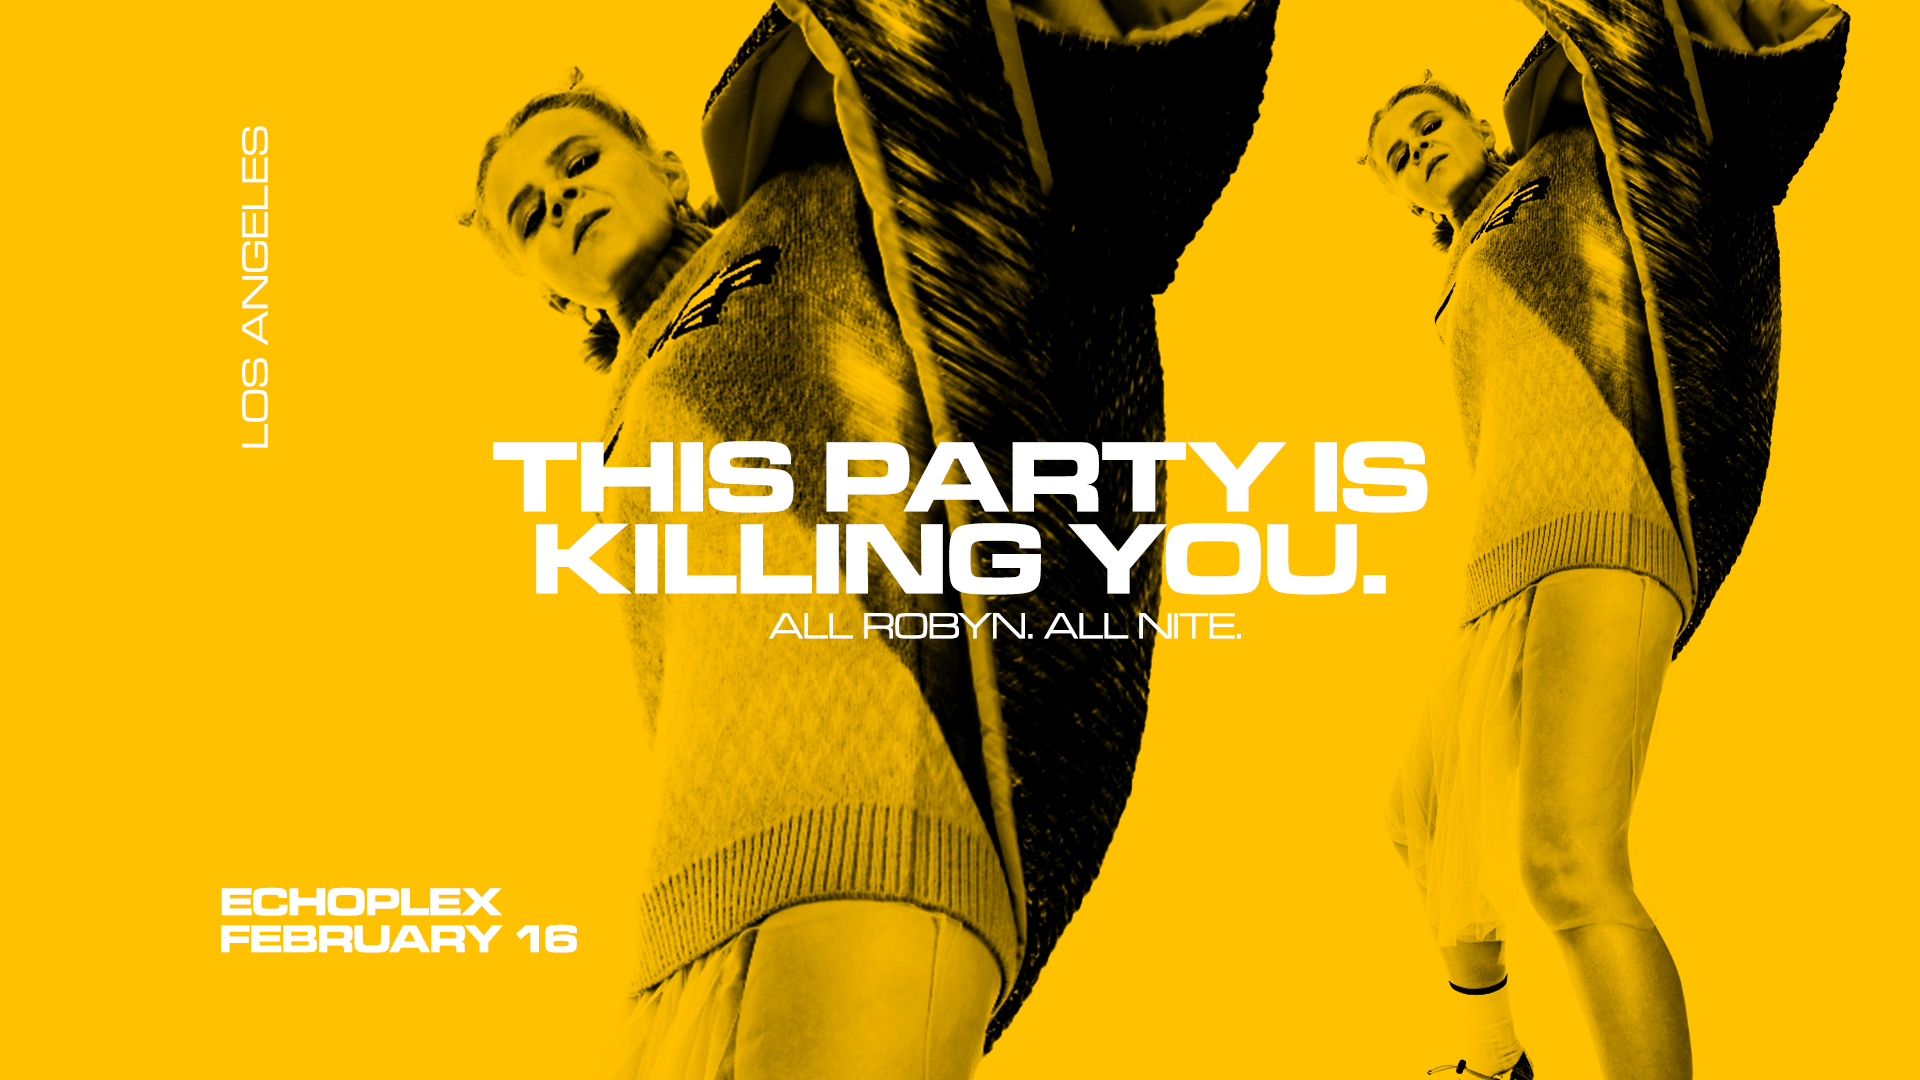 This Party Is Killing You: A Night of All Robyn Everything! Feb 16th in LA